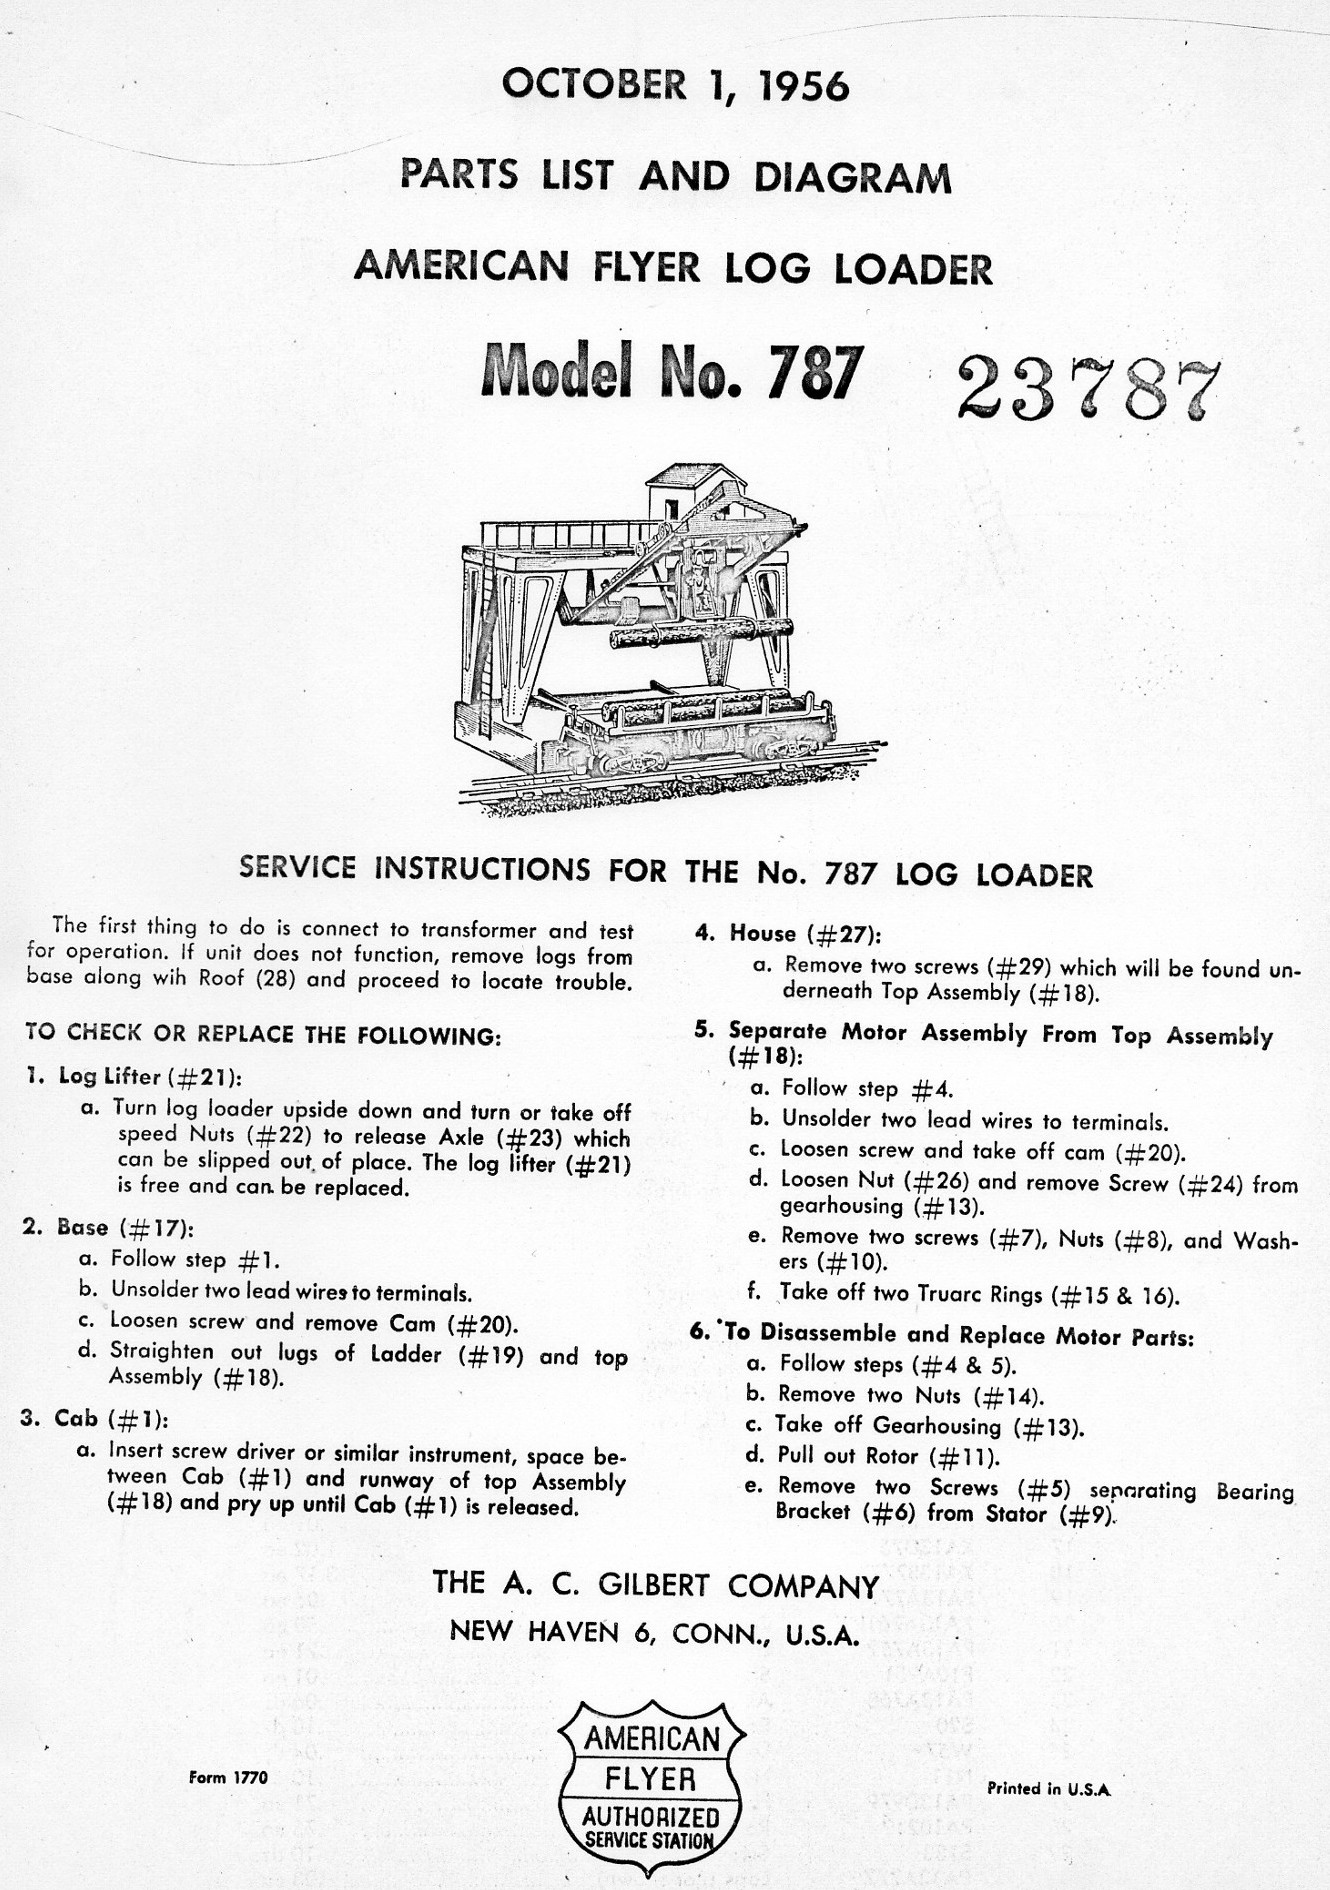 American Flyer Log Loader No. 787 Parts List and Diagram - Page 1